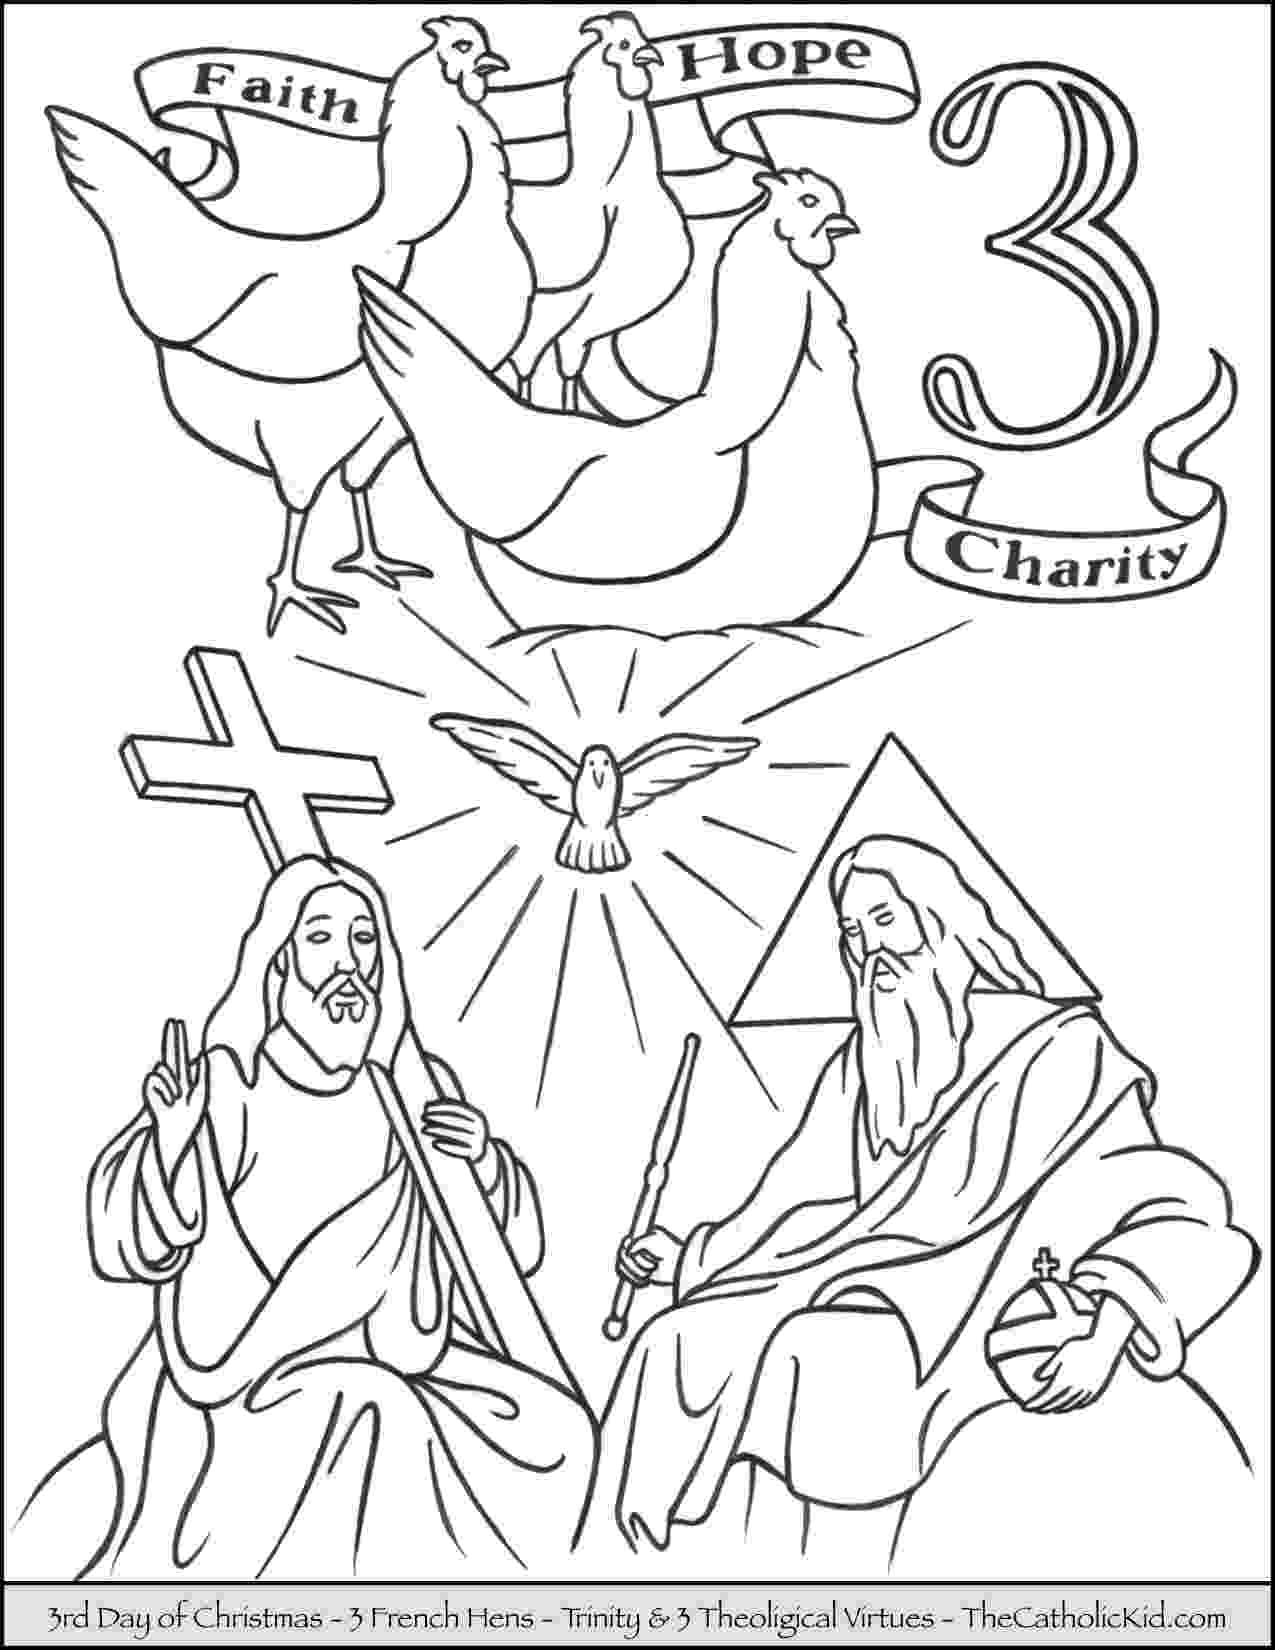 12 days of christmas coloring pages make your own 12 days of christmas coloring book christmas coloring 12 of pages days